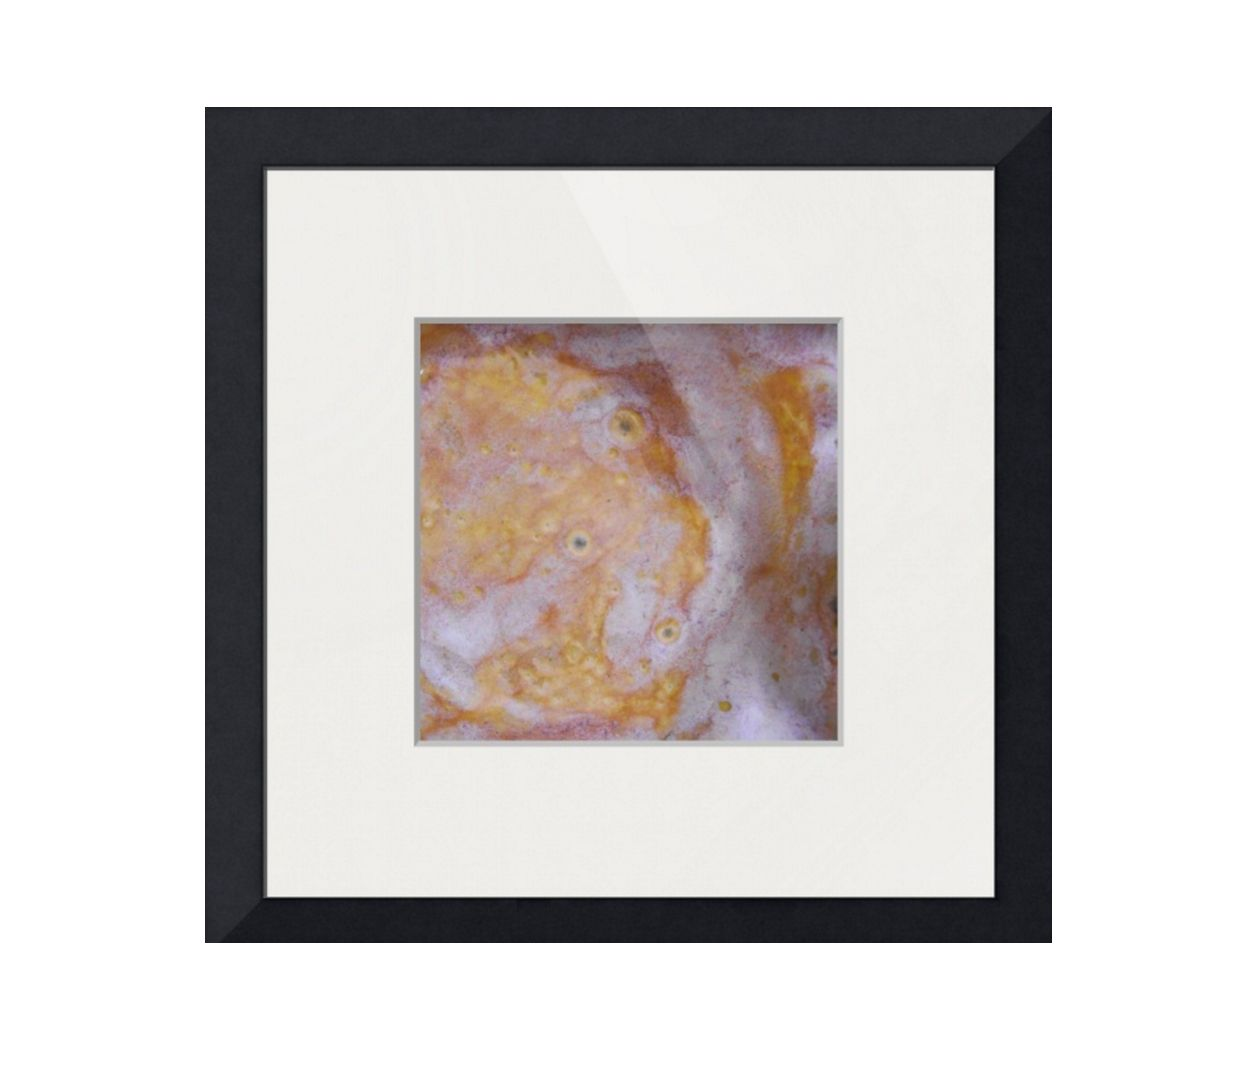 Abstract Framed Wall Art - Square #7 | Pin your original art ...